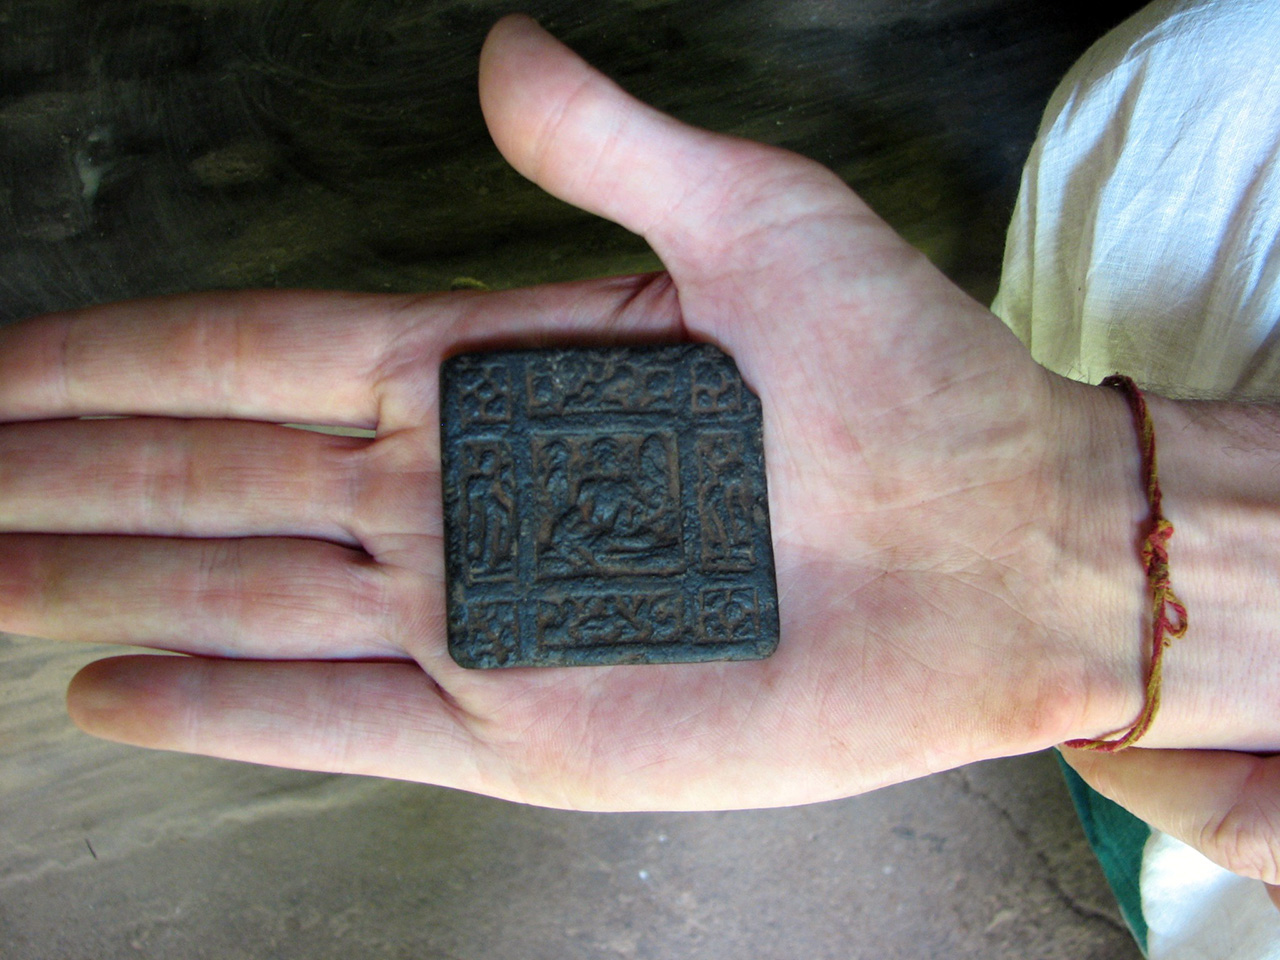 Mystery of the Ancient Stone Tablet Finally Solved